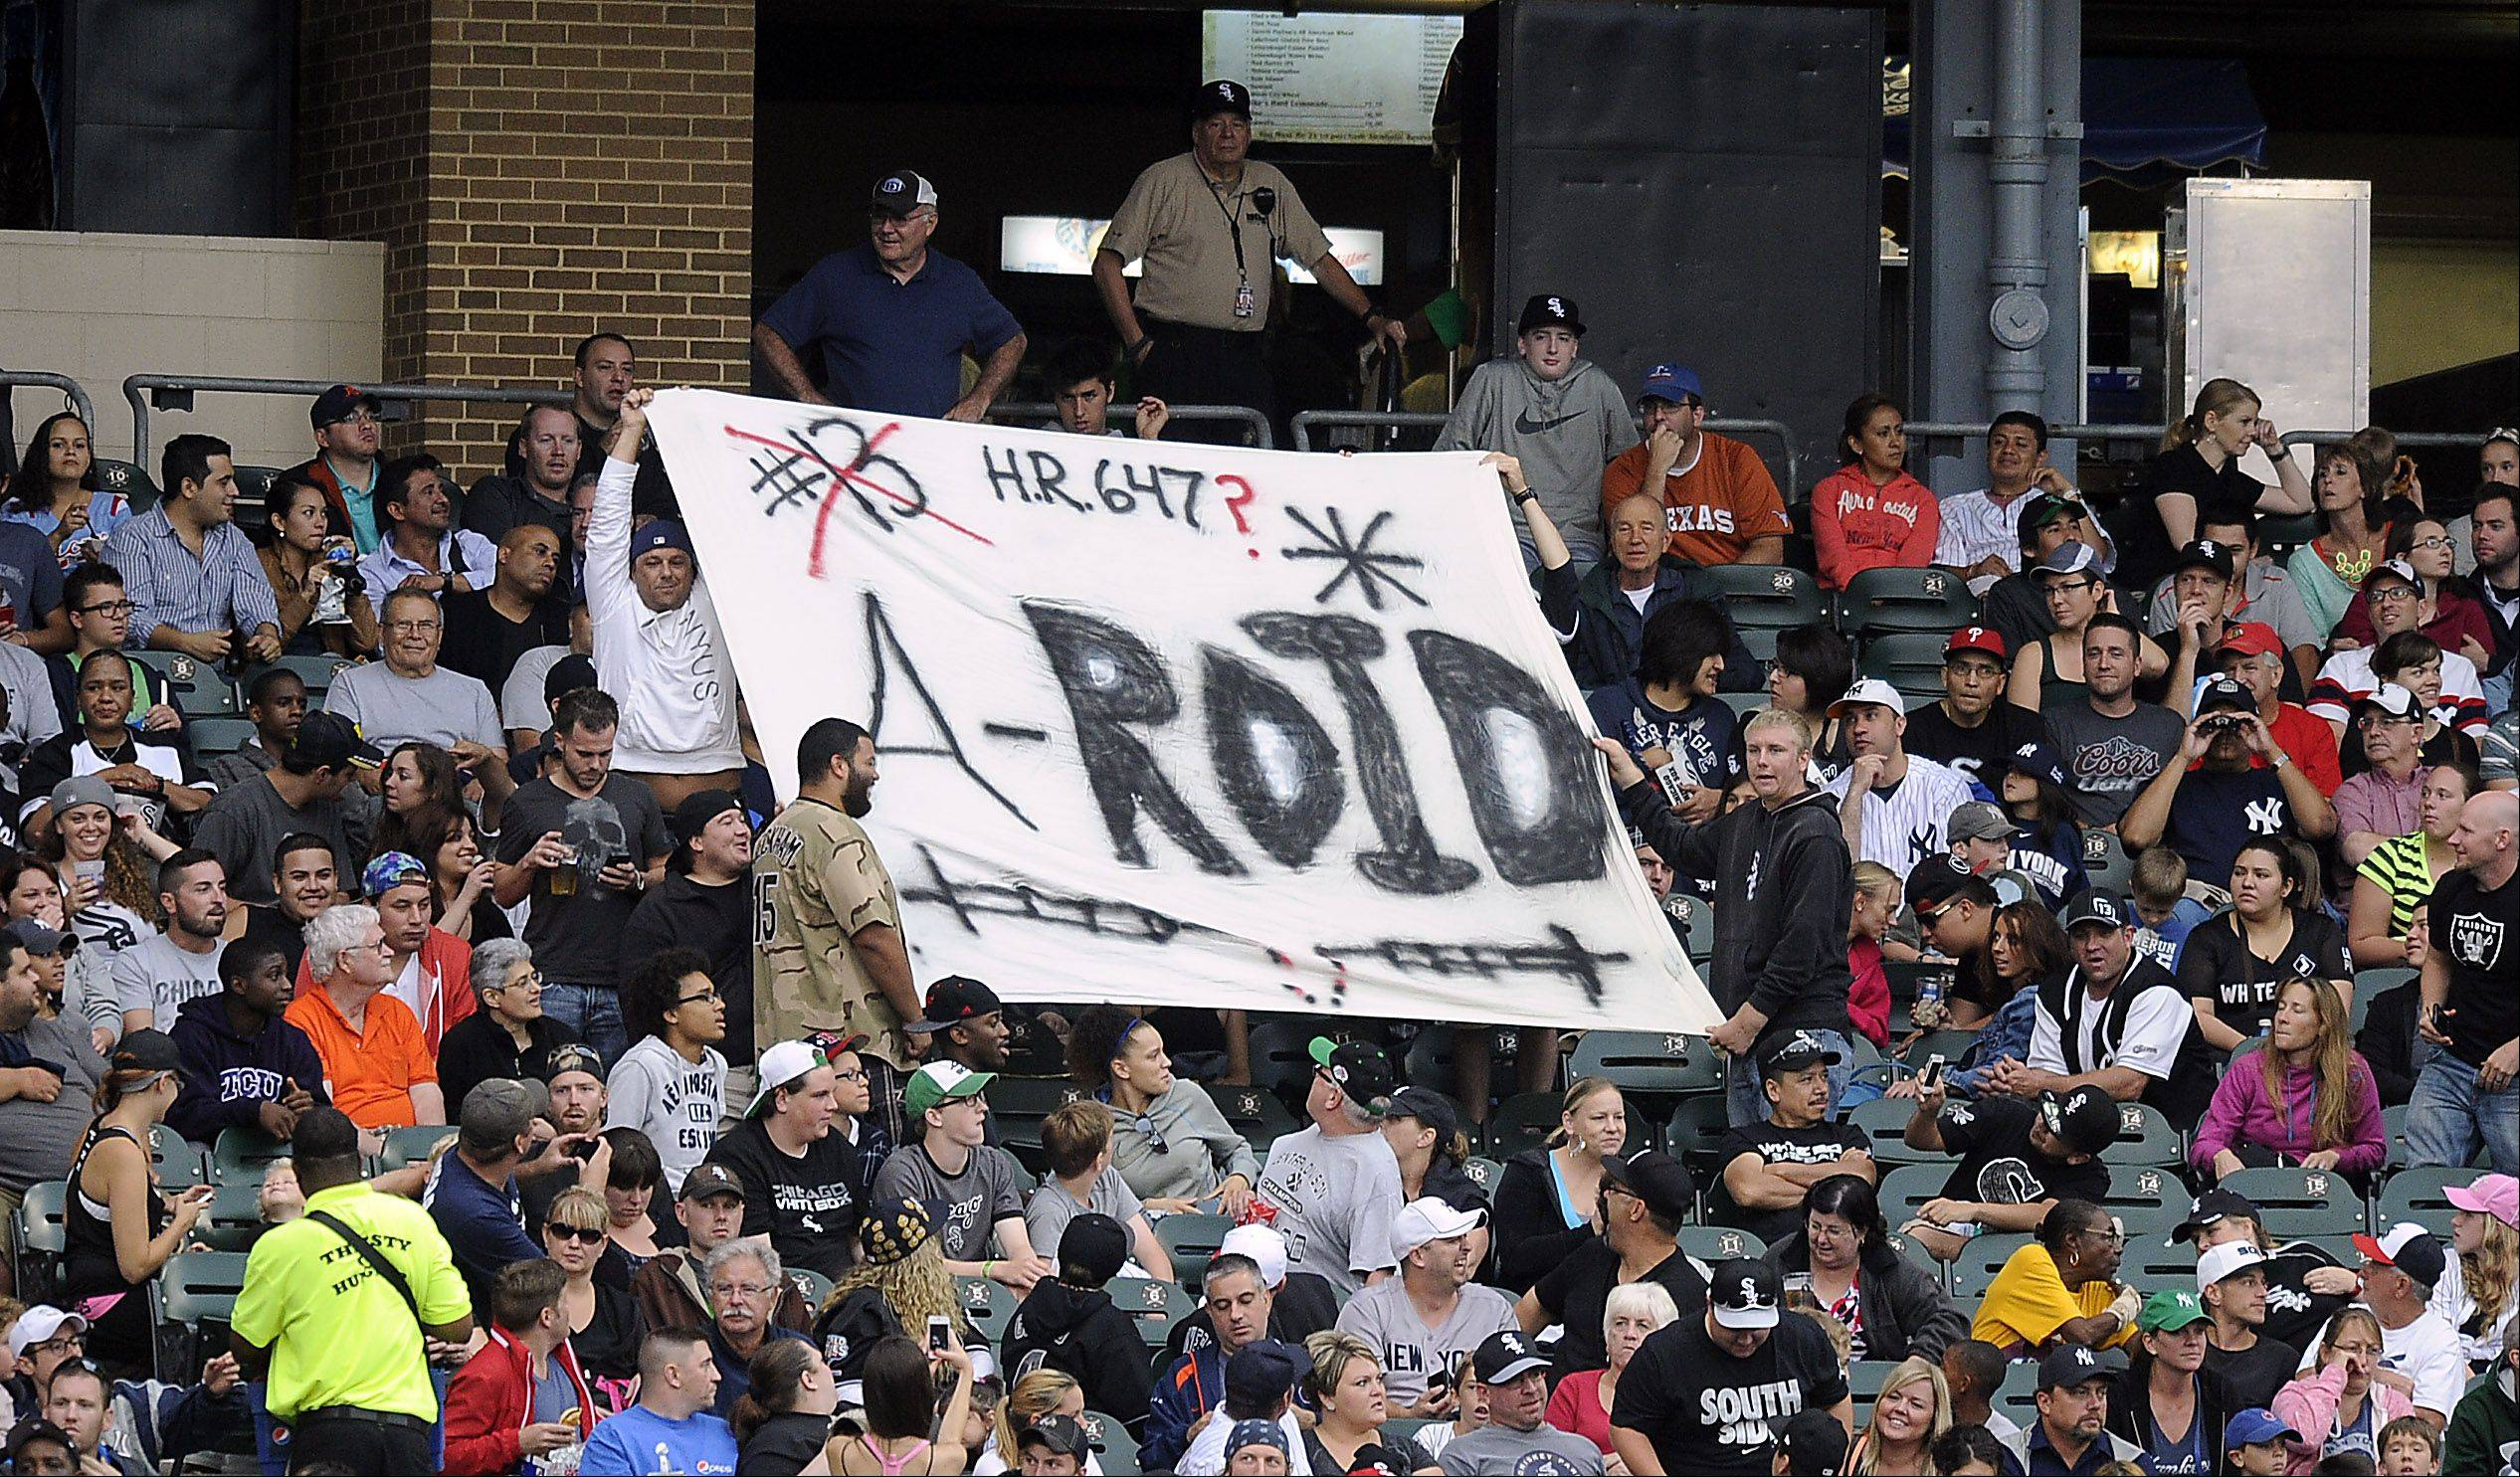 Fans express their feelings toward New York Yankees Alex Rodriguez at Cellular Field in Chicago on Monday.